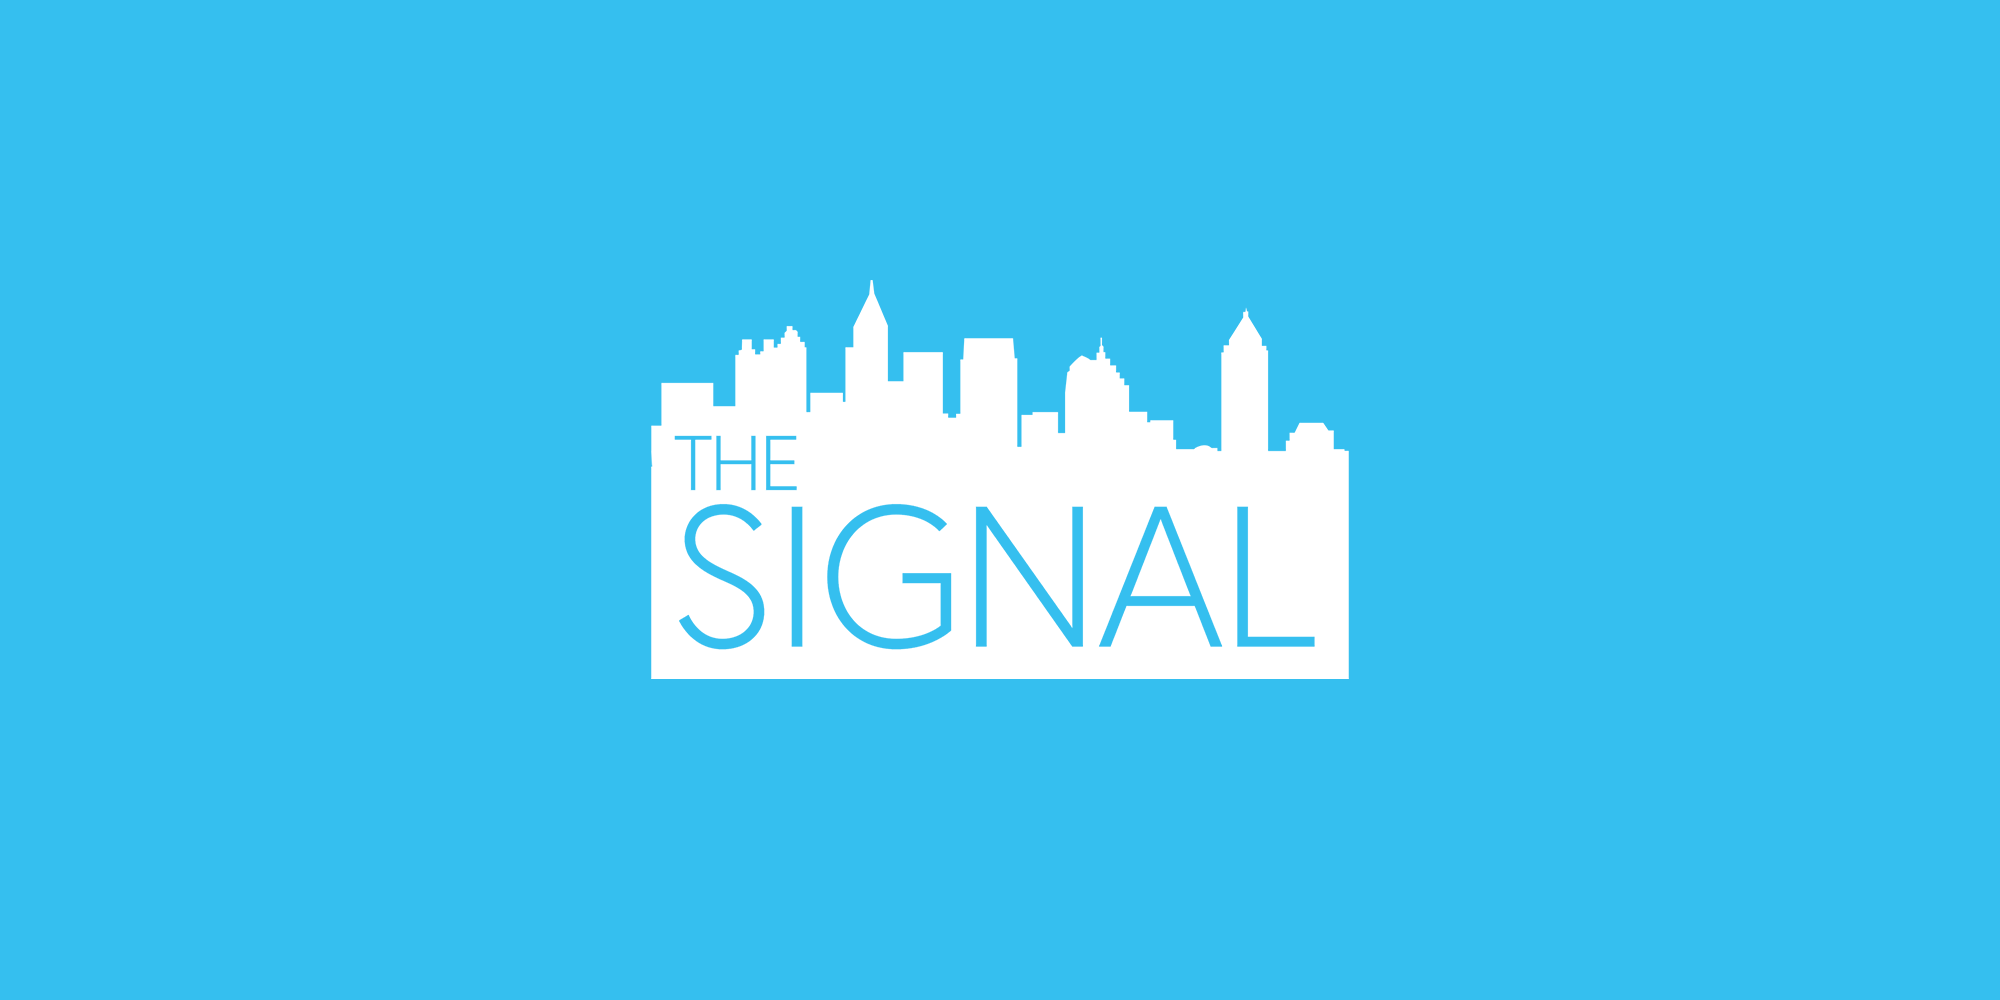 The Signal logo on a light blue background